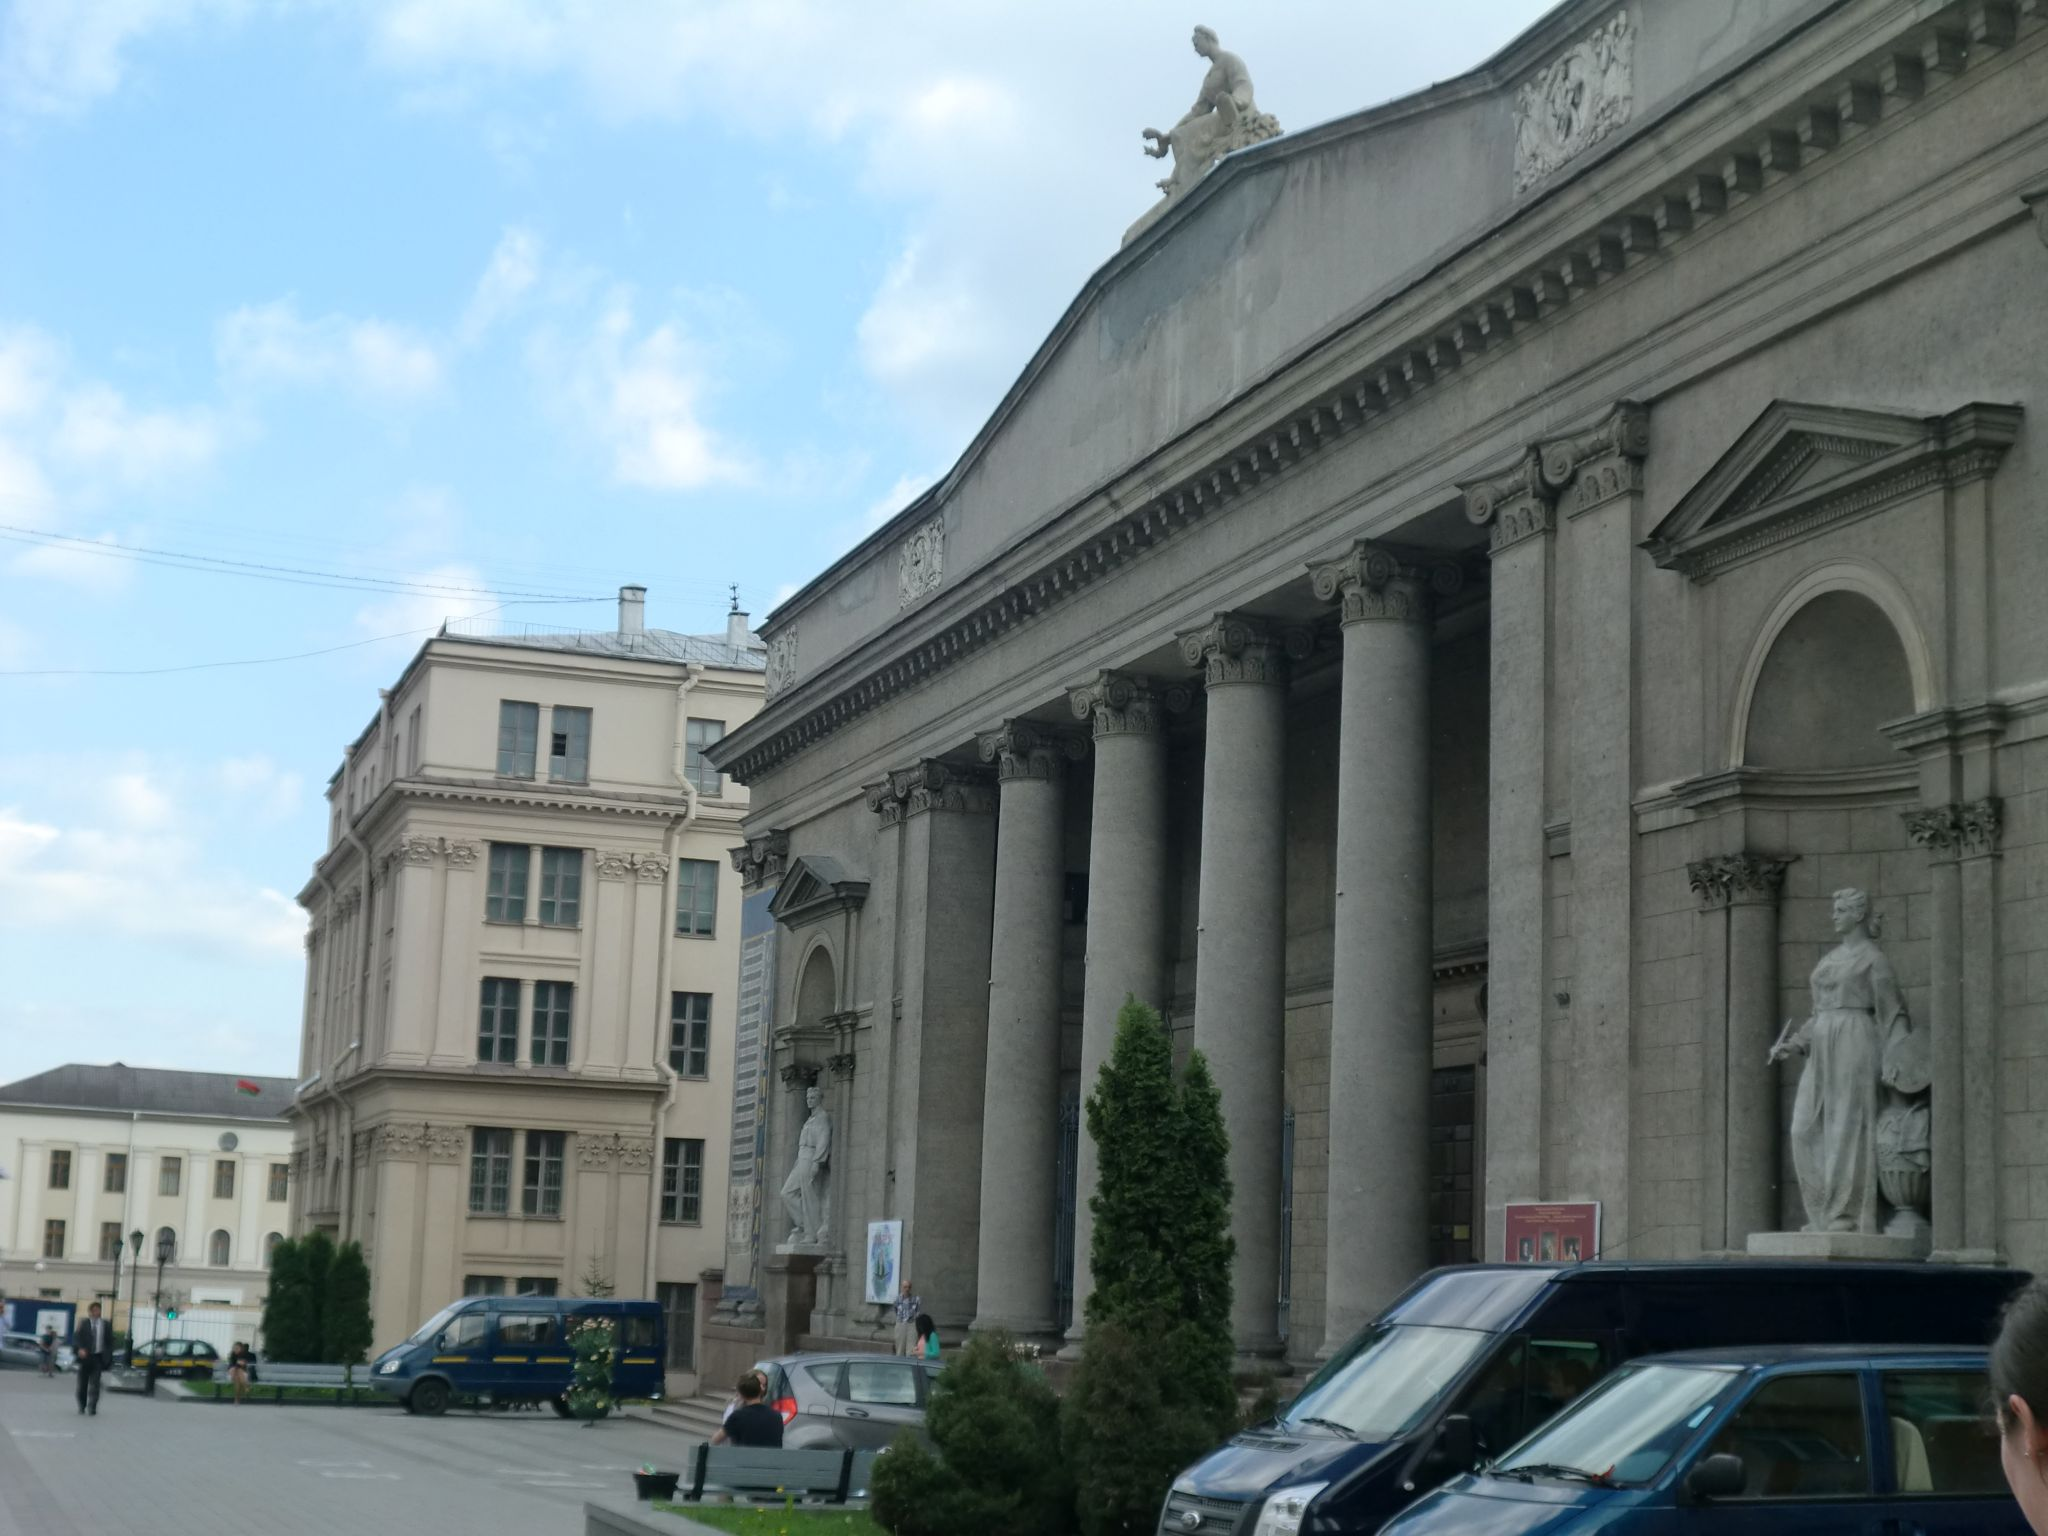 Minsk city 22 - Minsk, 1 amazing city you have to see